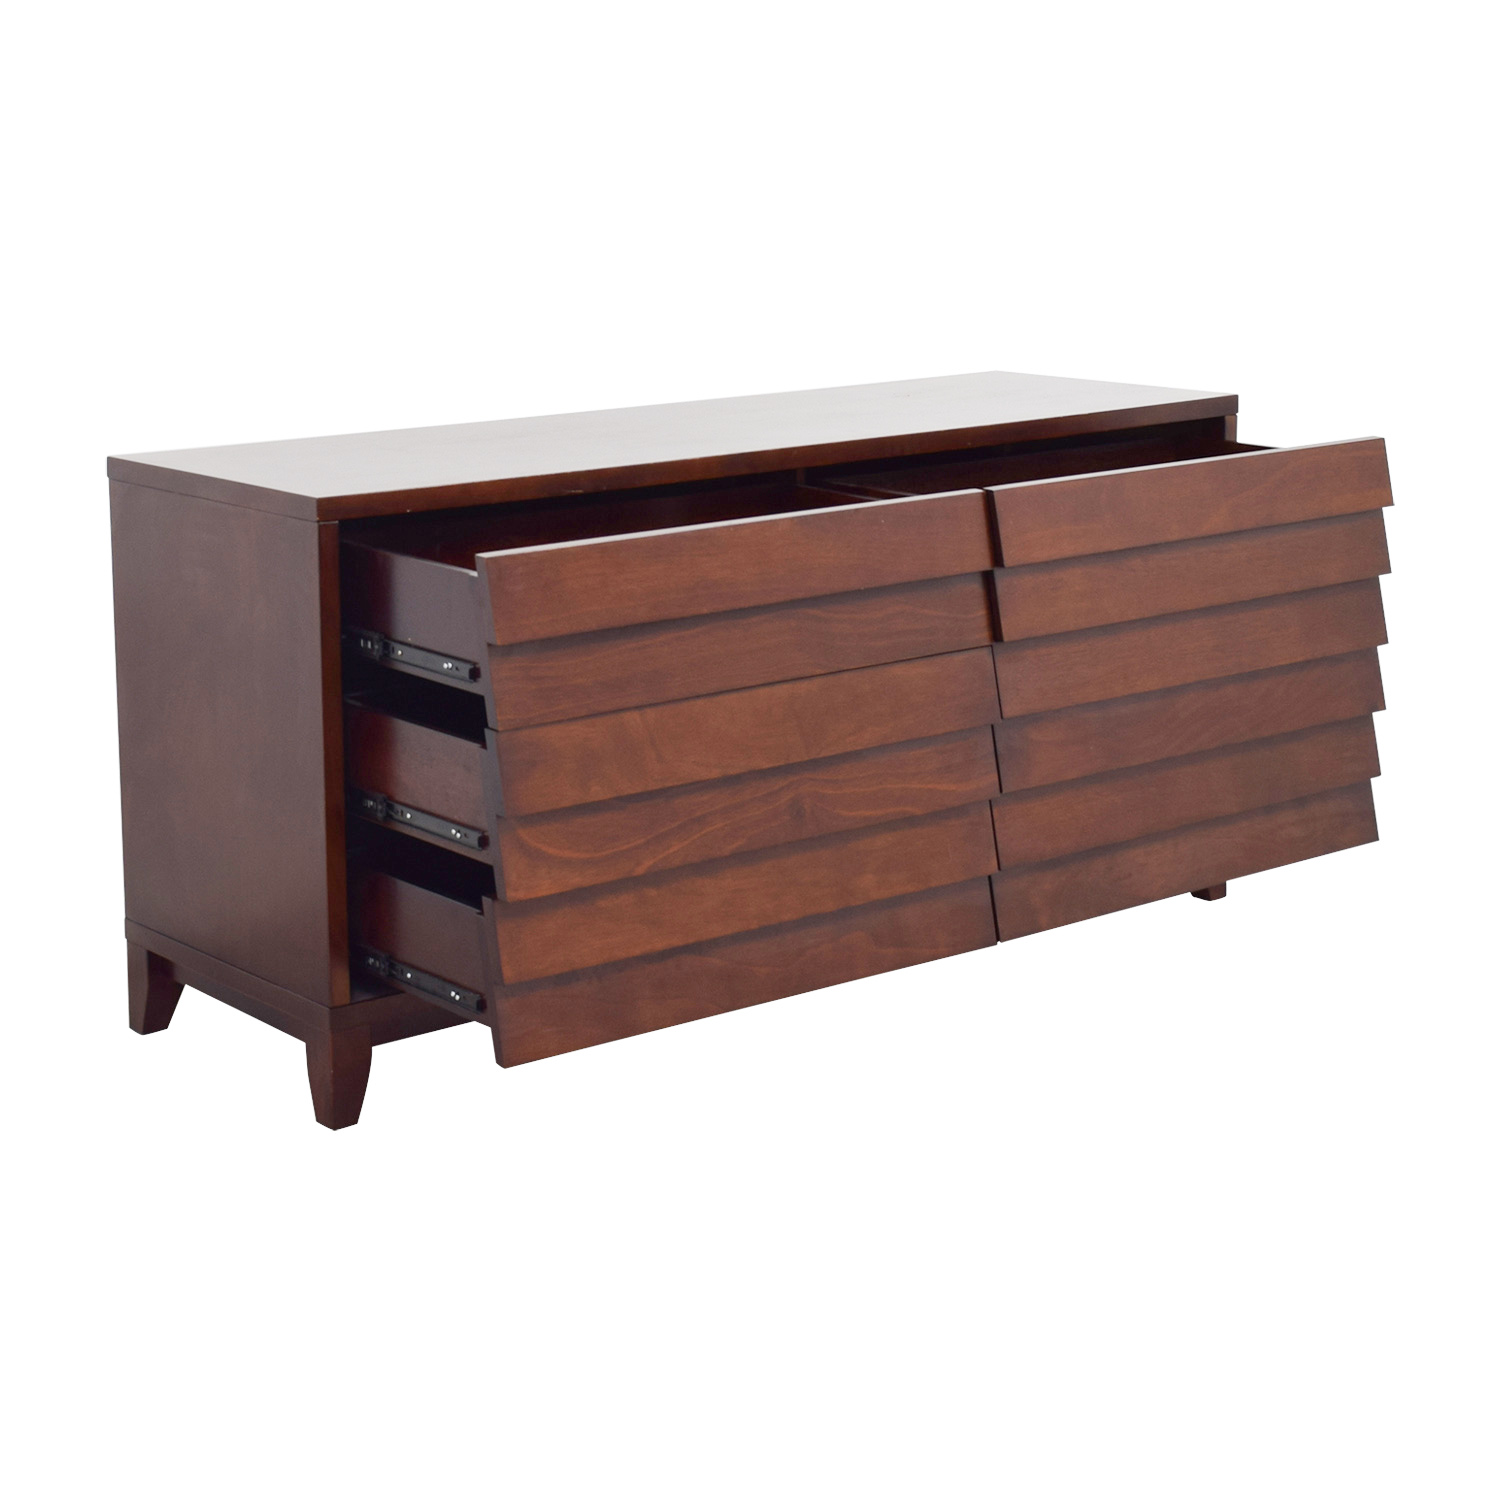 buy Jordans Furniture Six-Drawer Dresser Jordans Furniture Storage